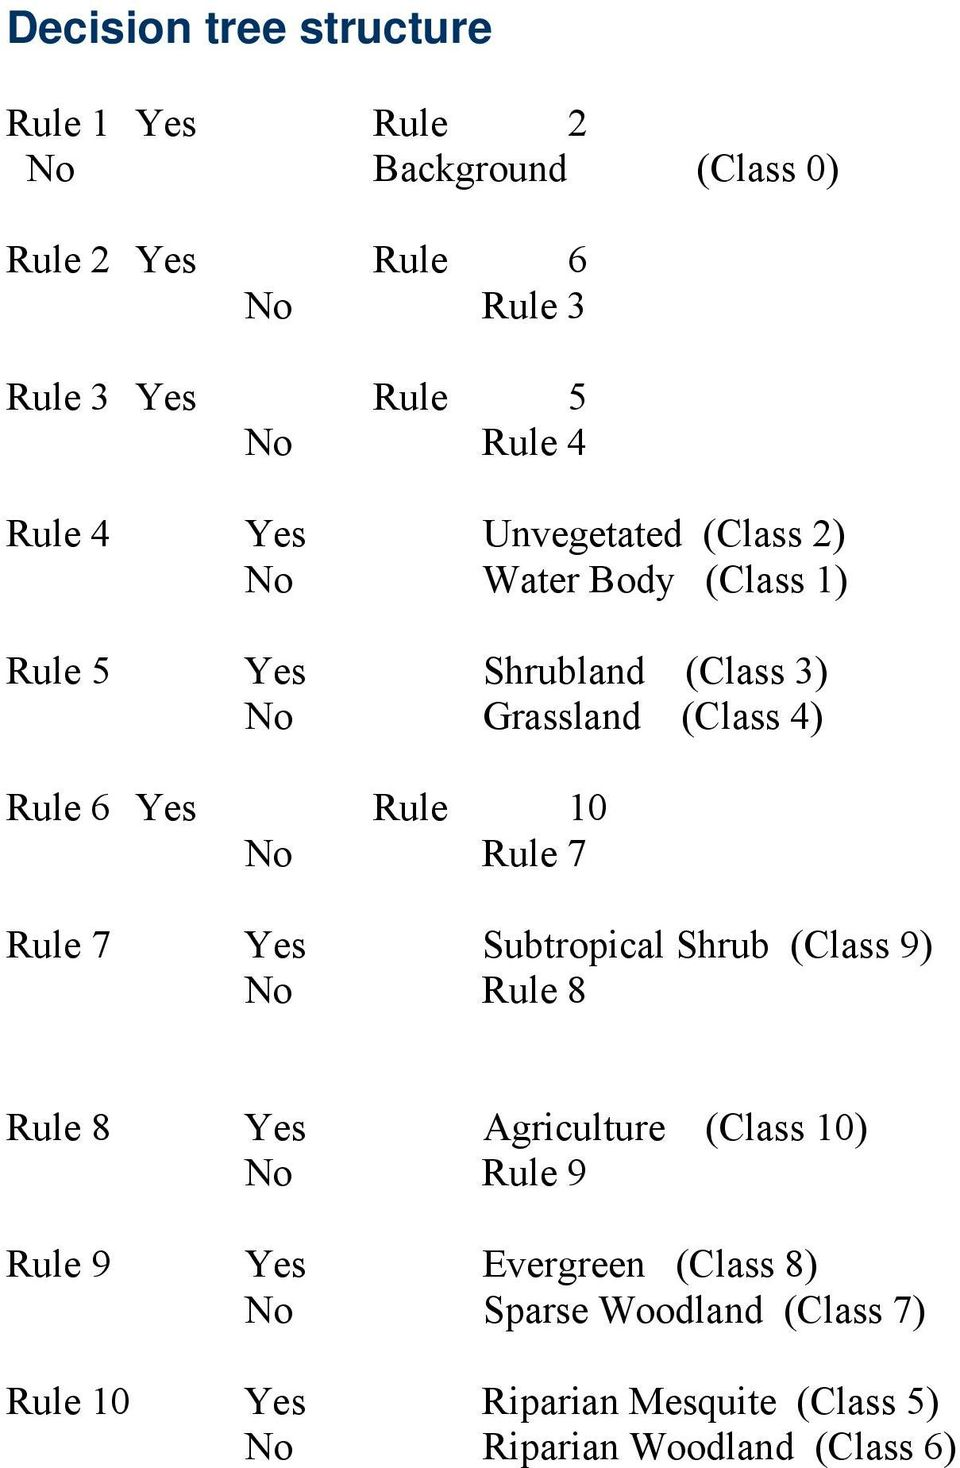 Rule 10 No Rule 7 Rule 7 Yes Subtropical Shrub (Class 9) No Rule 8 Rule 8 Yes Agriculture (Class 10) No Rule 9 Rule 9 Yes